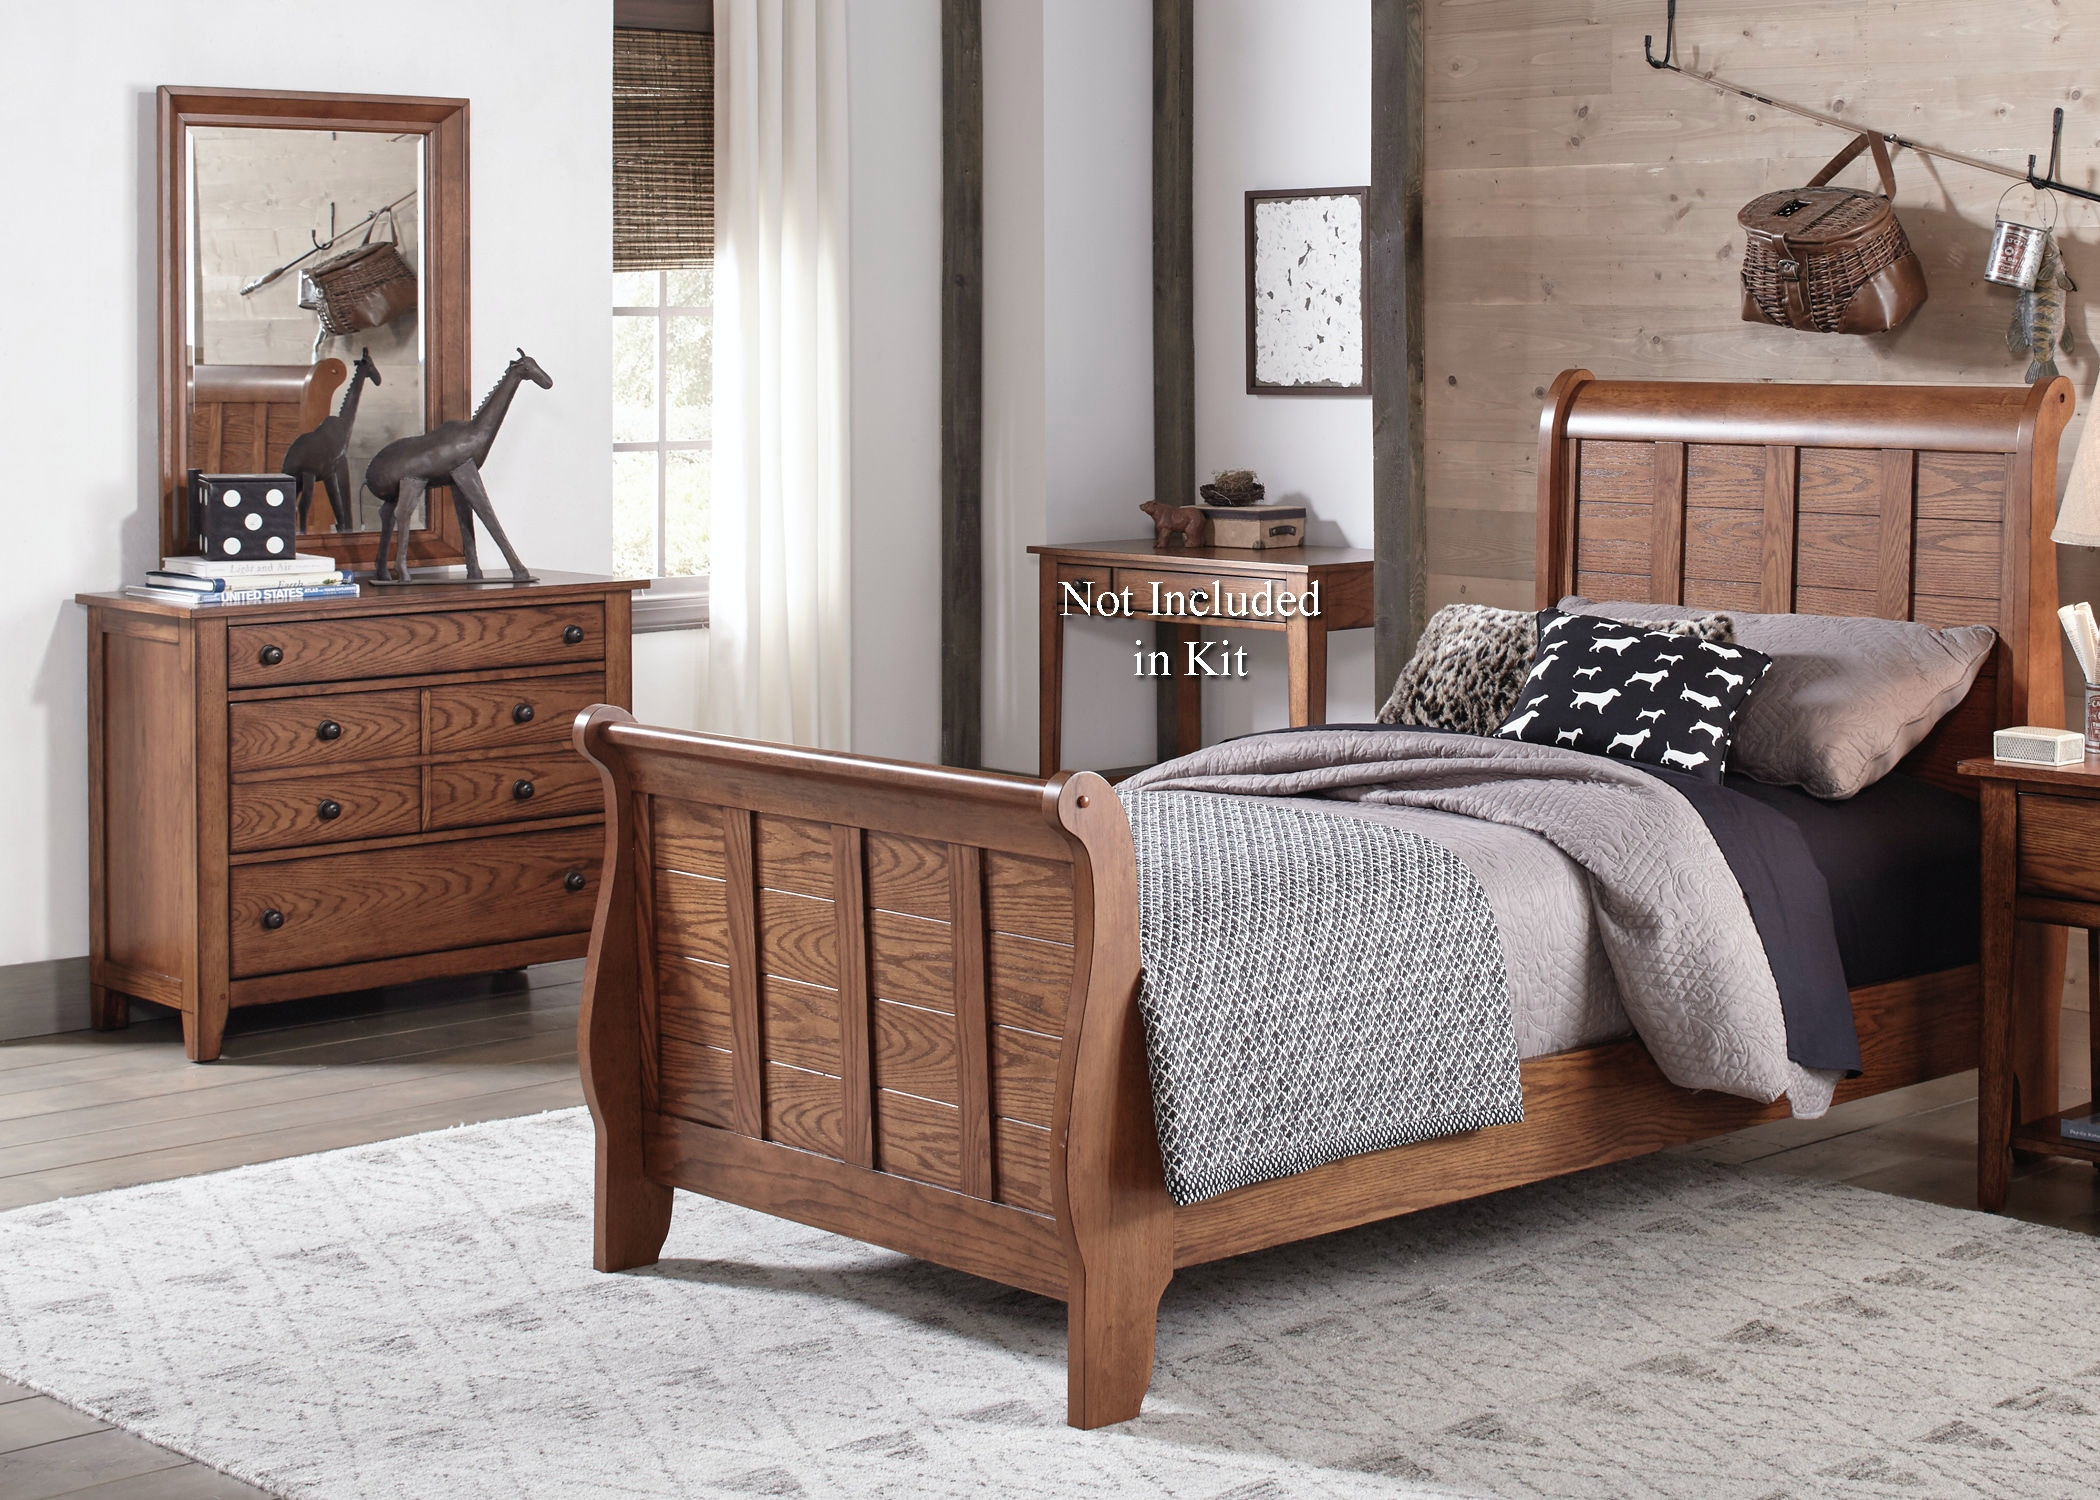 full sleigh bed dresser and mirror